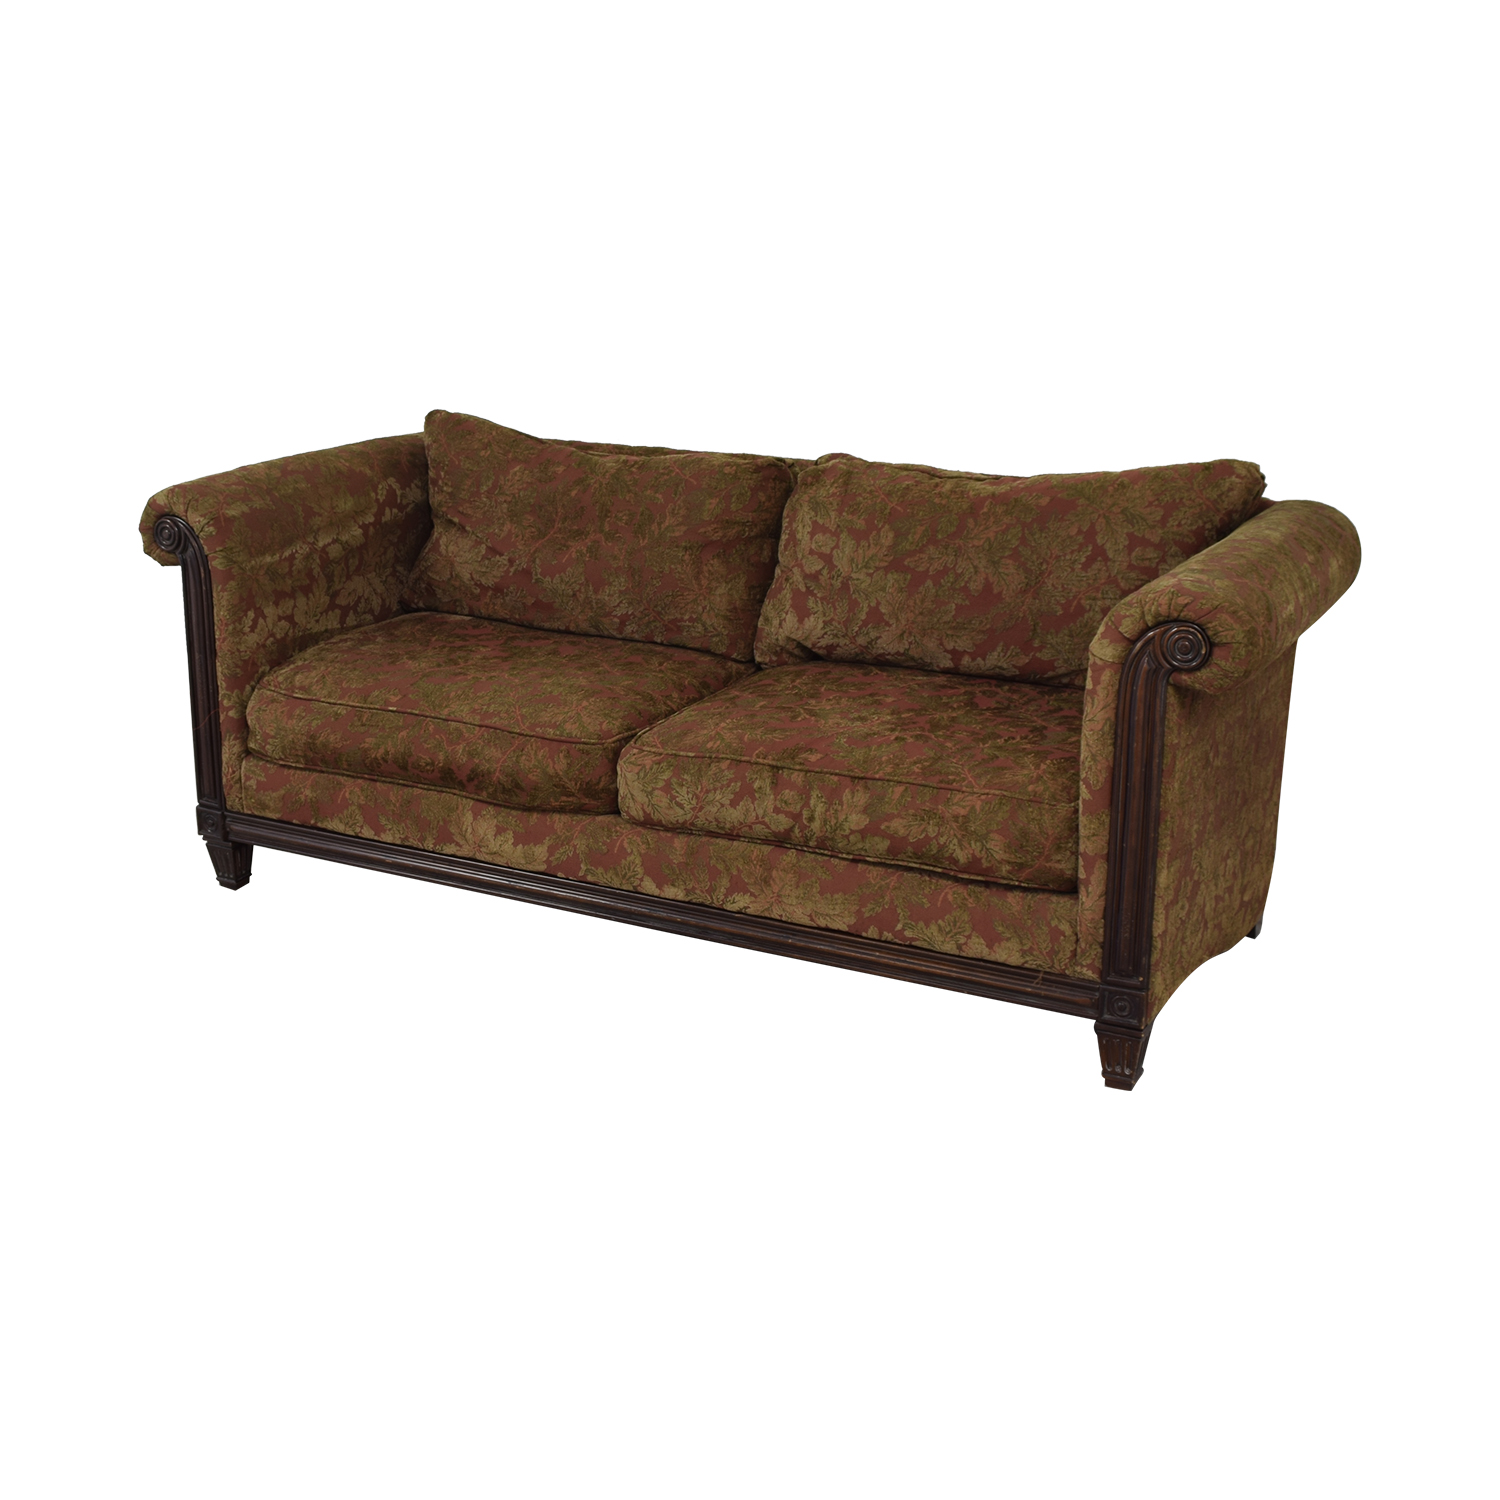 buy Macy's by Bernhardt Two Cushion Sofa Macy's Sofas